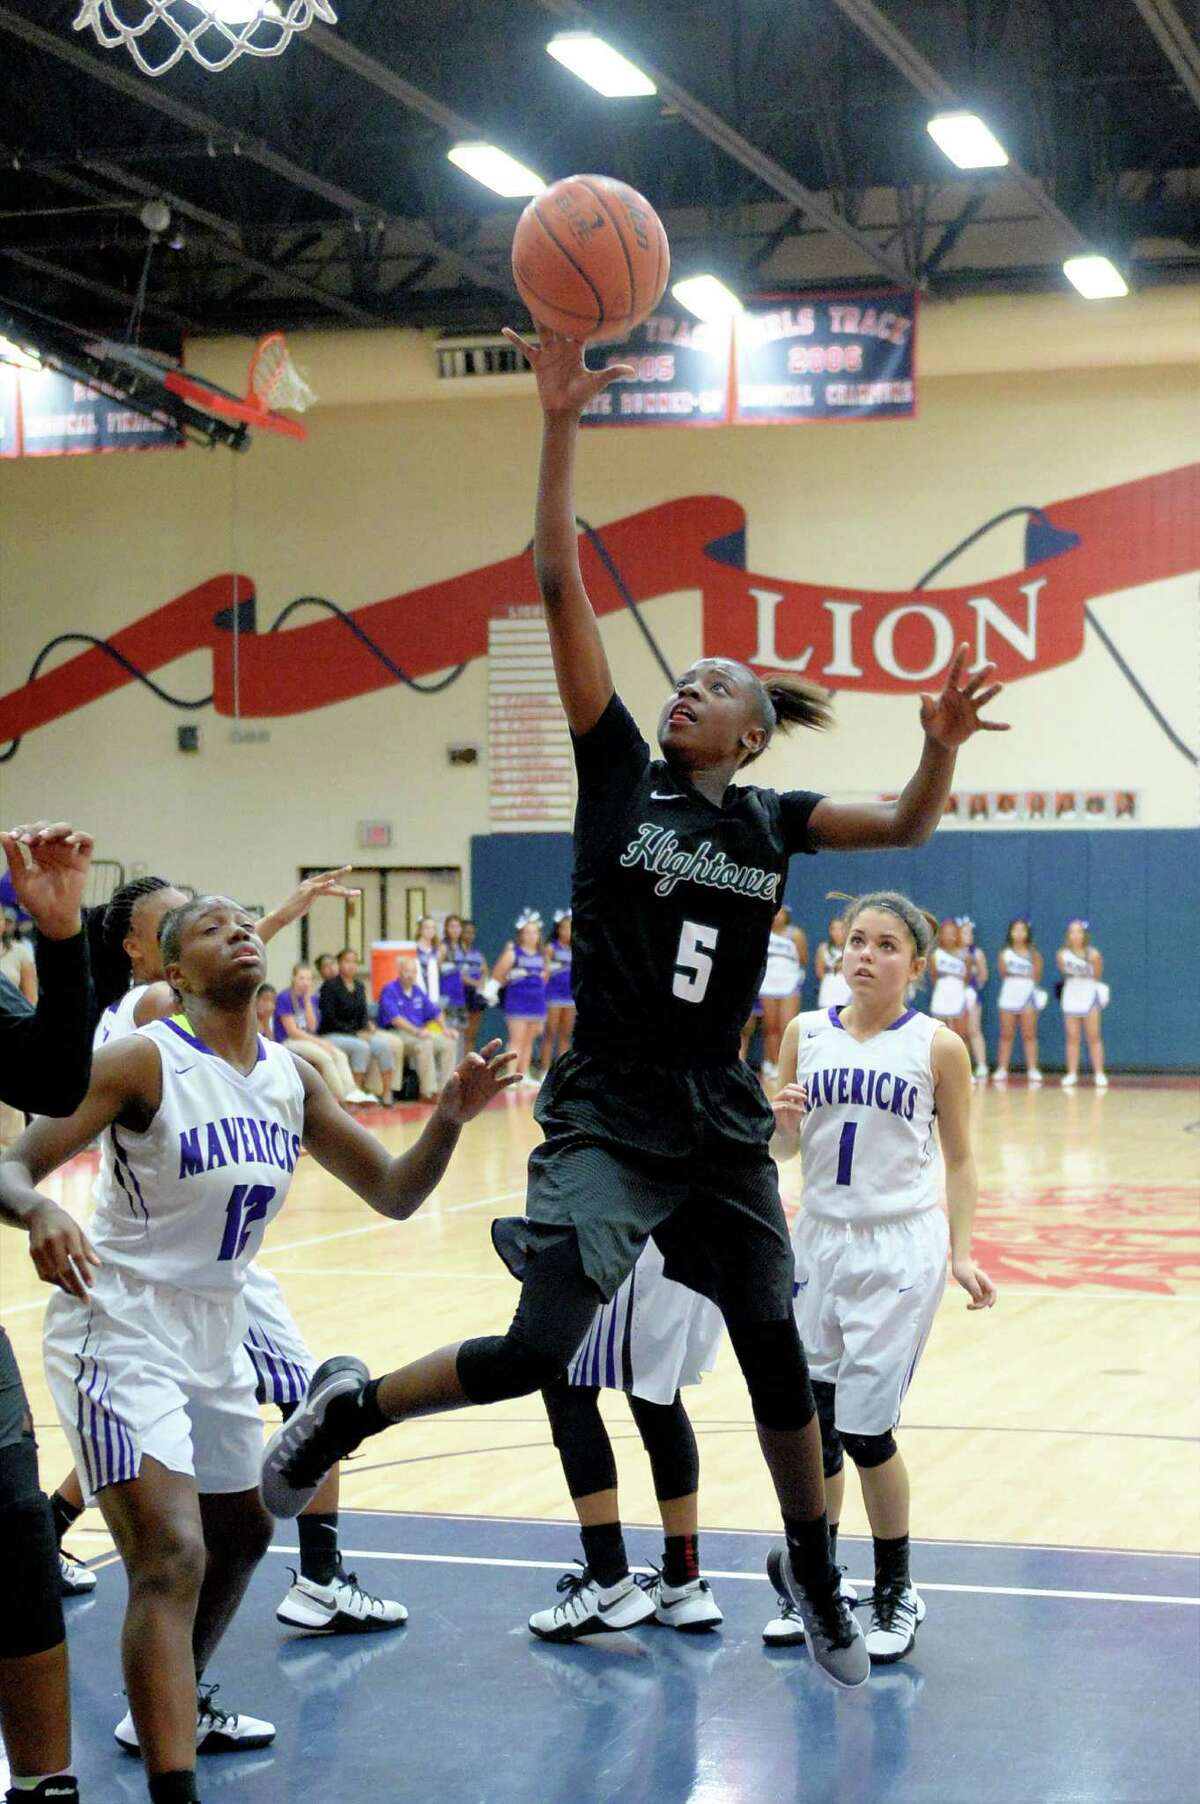 Taelor Purvis (5) of Hightwwer drives to the hoop during the second half of the girls Bi-District playoff game between the Hightower Hurricanes and the Morton Ranch Mavericks on Monday February 13, 2017 at Alief Taylor High School, Houston, TX.